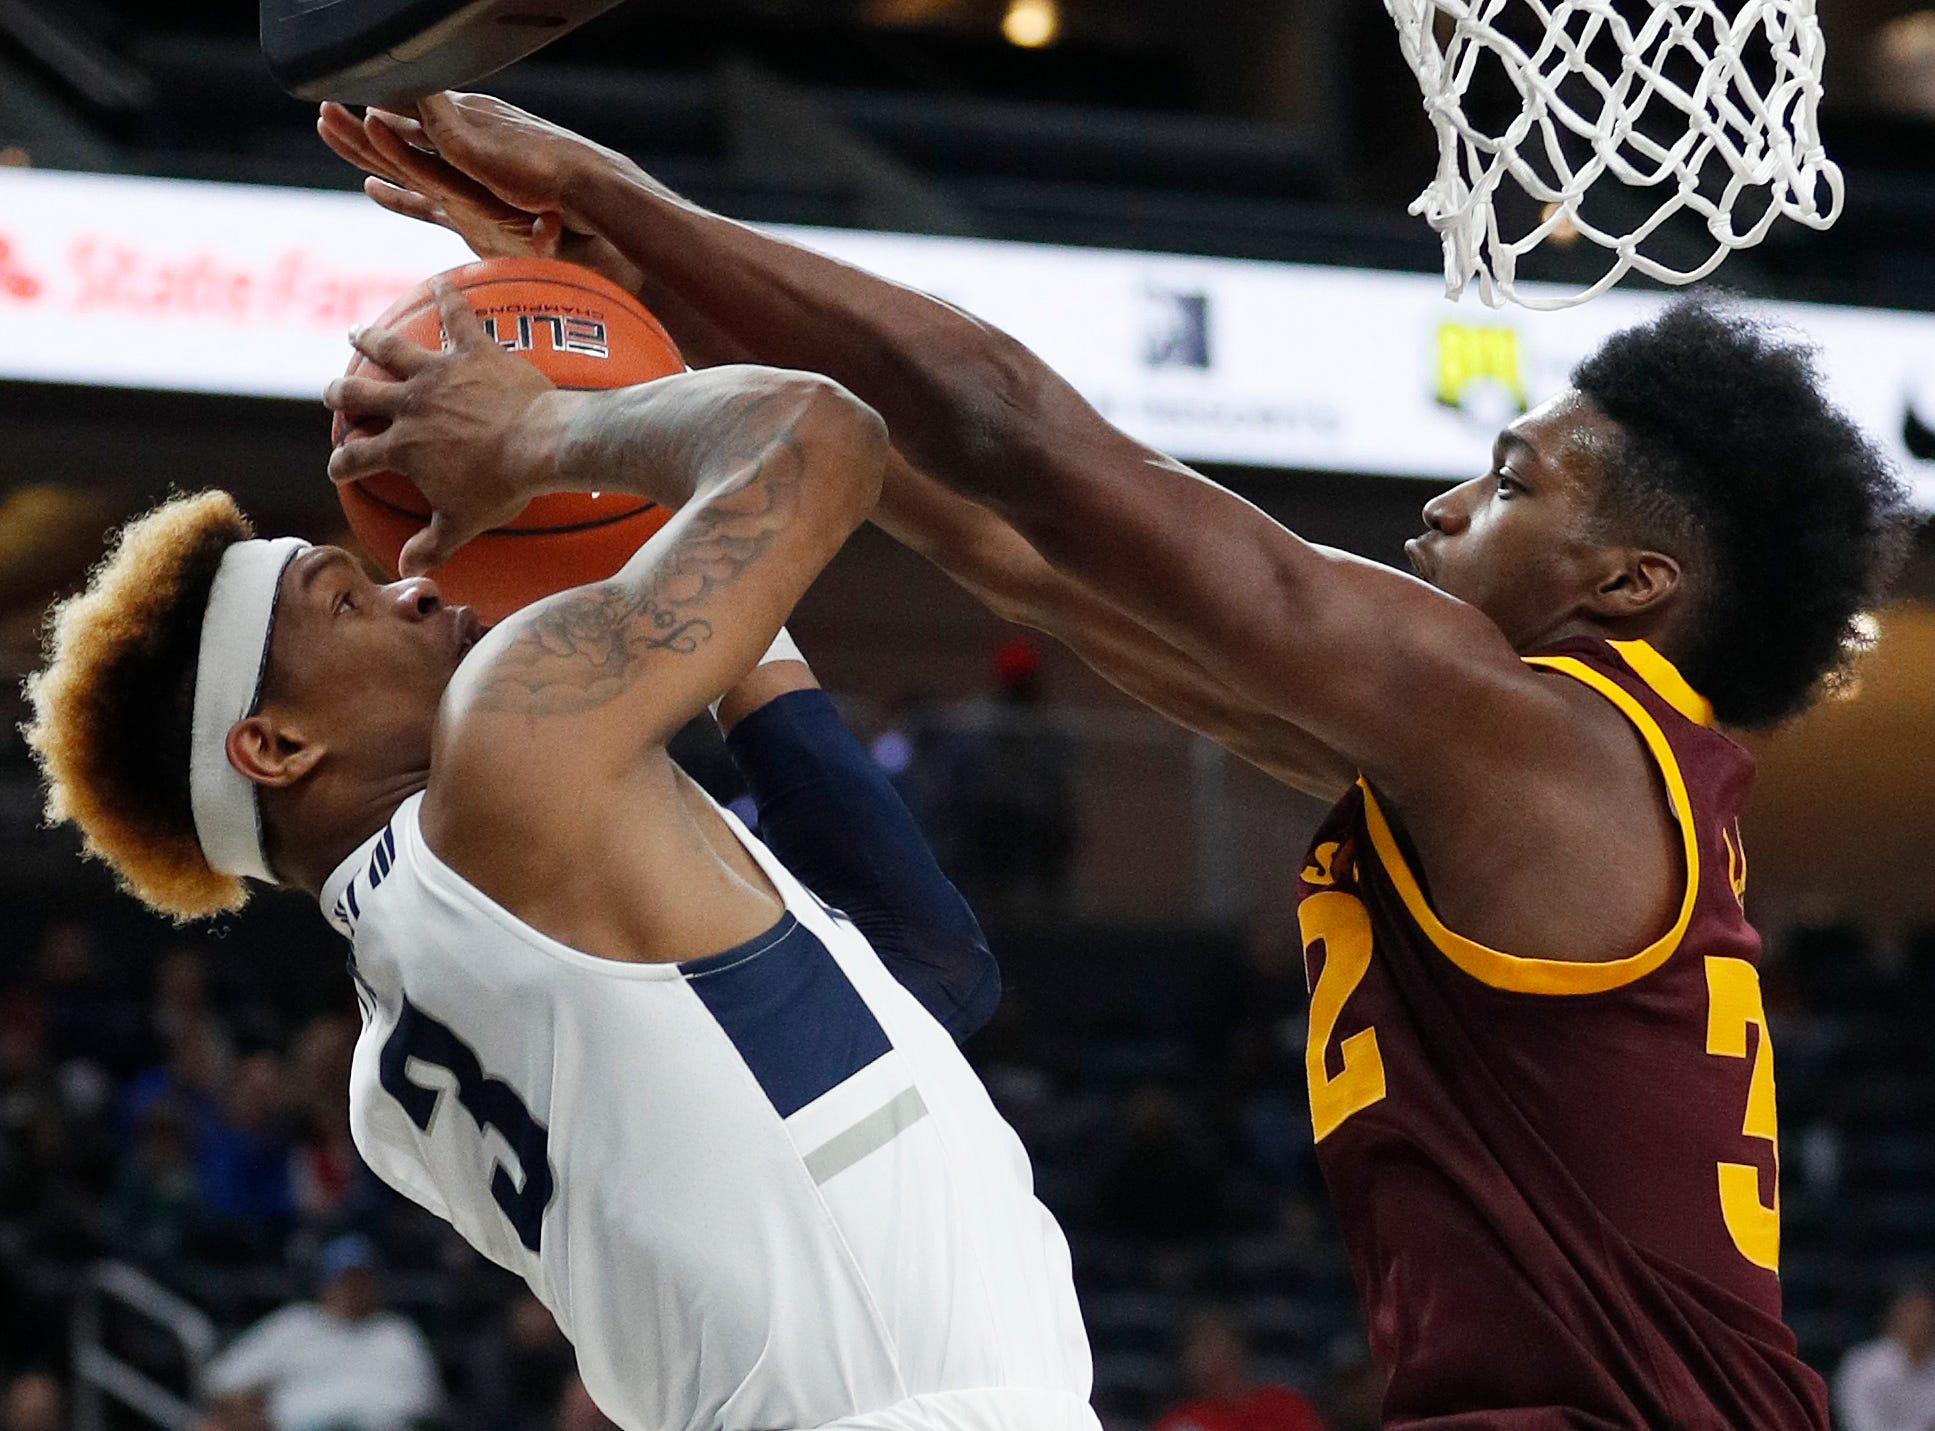 Arizona State's Romello White blocks a shot by Utah State's John Knight III during the first half of the MGM Resorts Main Event Tournament championship game.